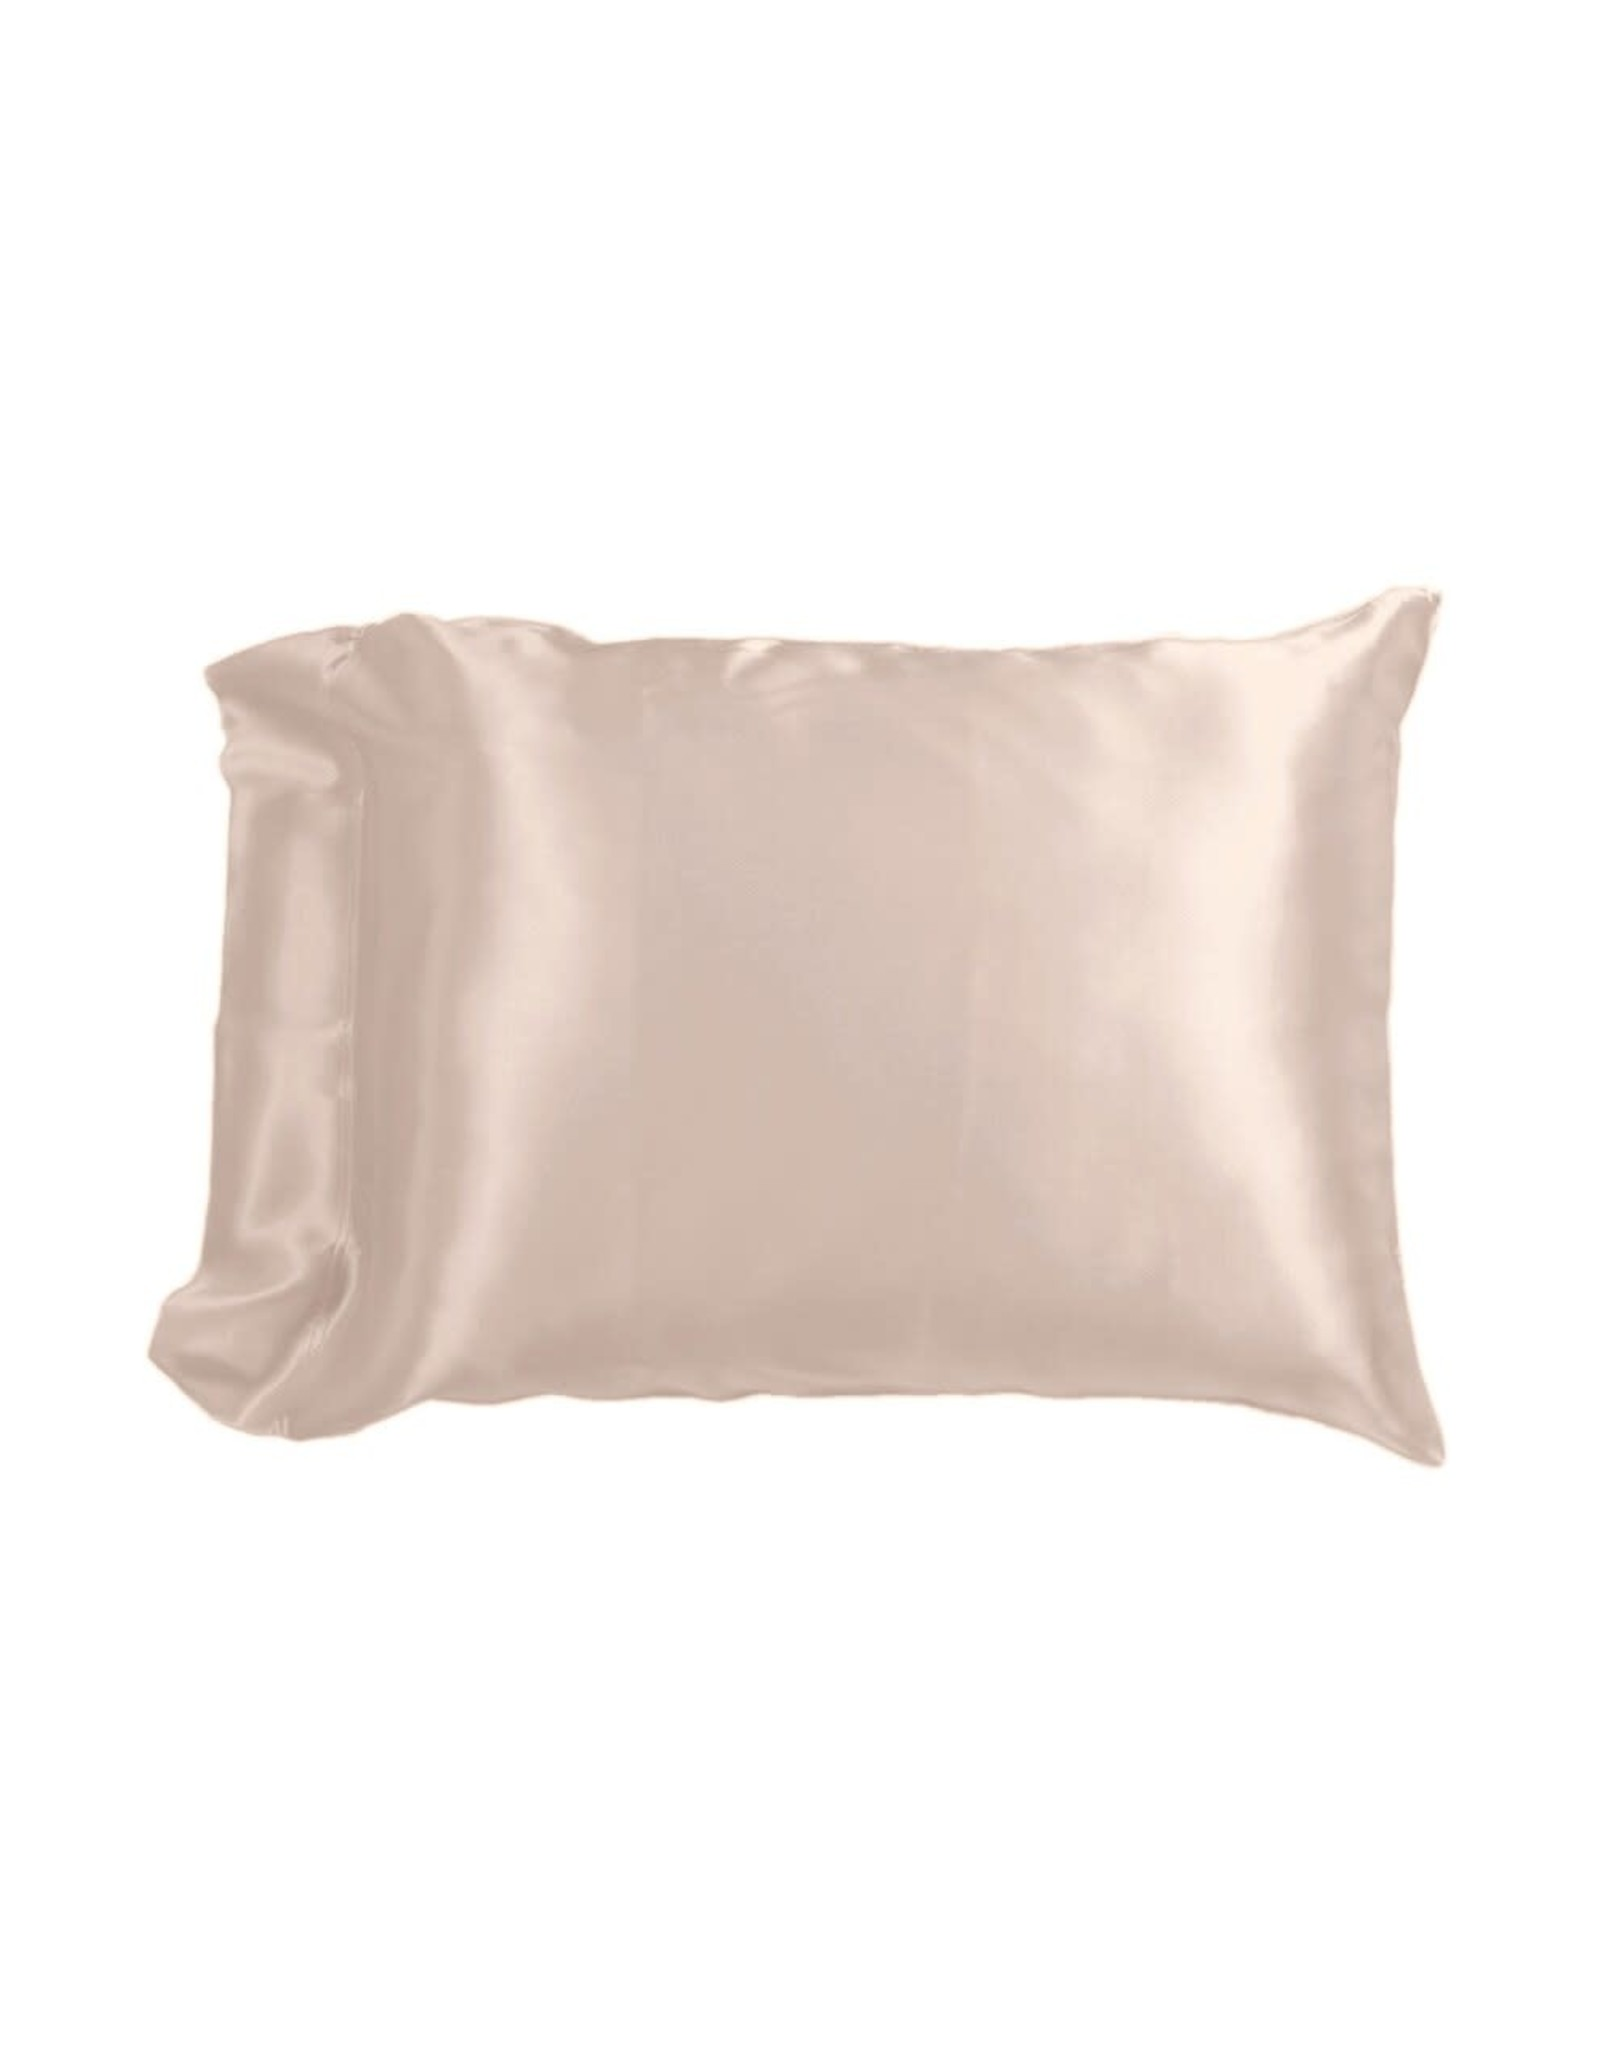 Pillowcases (Pair) Silk